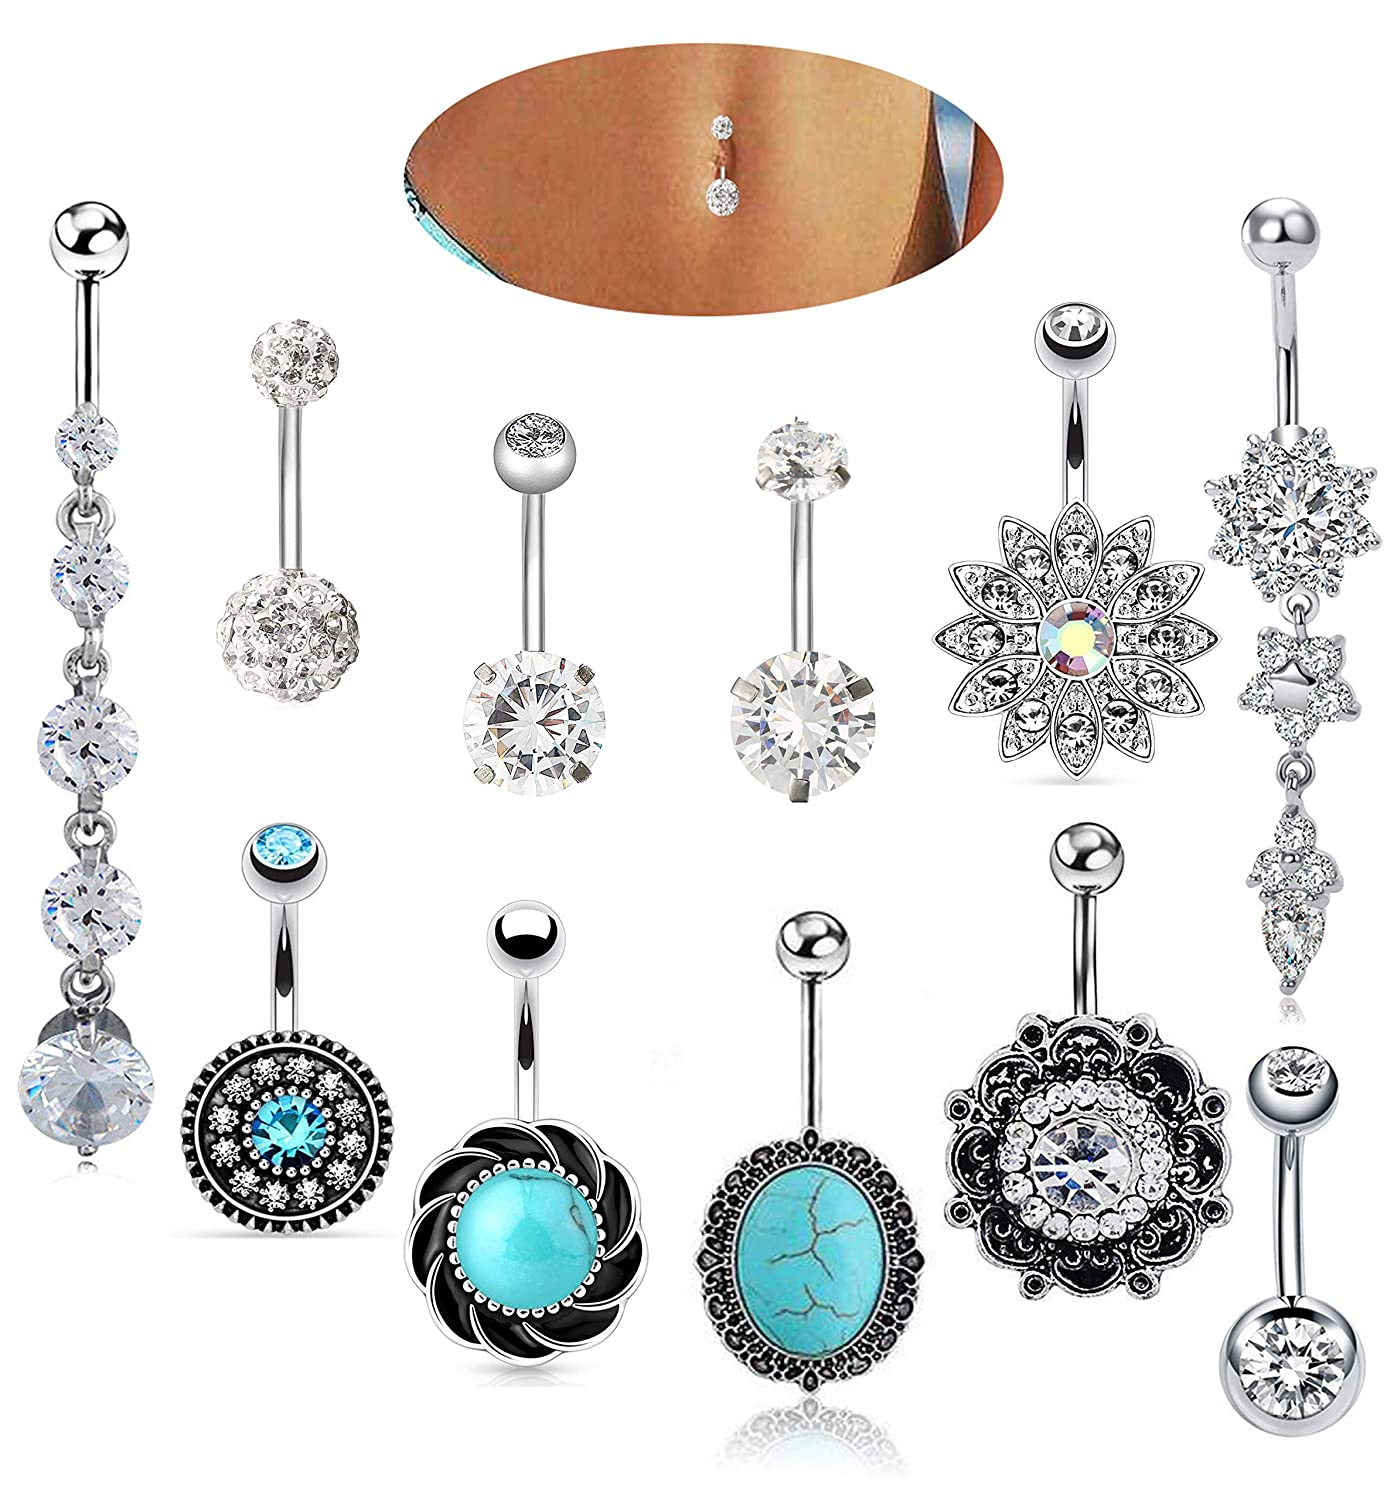 EVELICAL 4-11Pcs 14G Stainless Steel Belly Button Rings for Women Girls CZ Screw Navel Bars Body Piercing Jewelry B077S1H71C_US